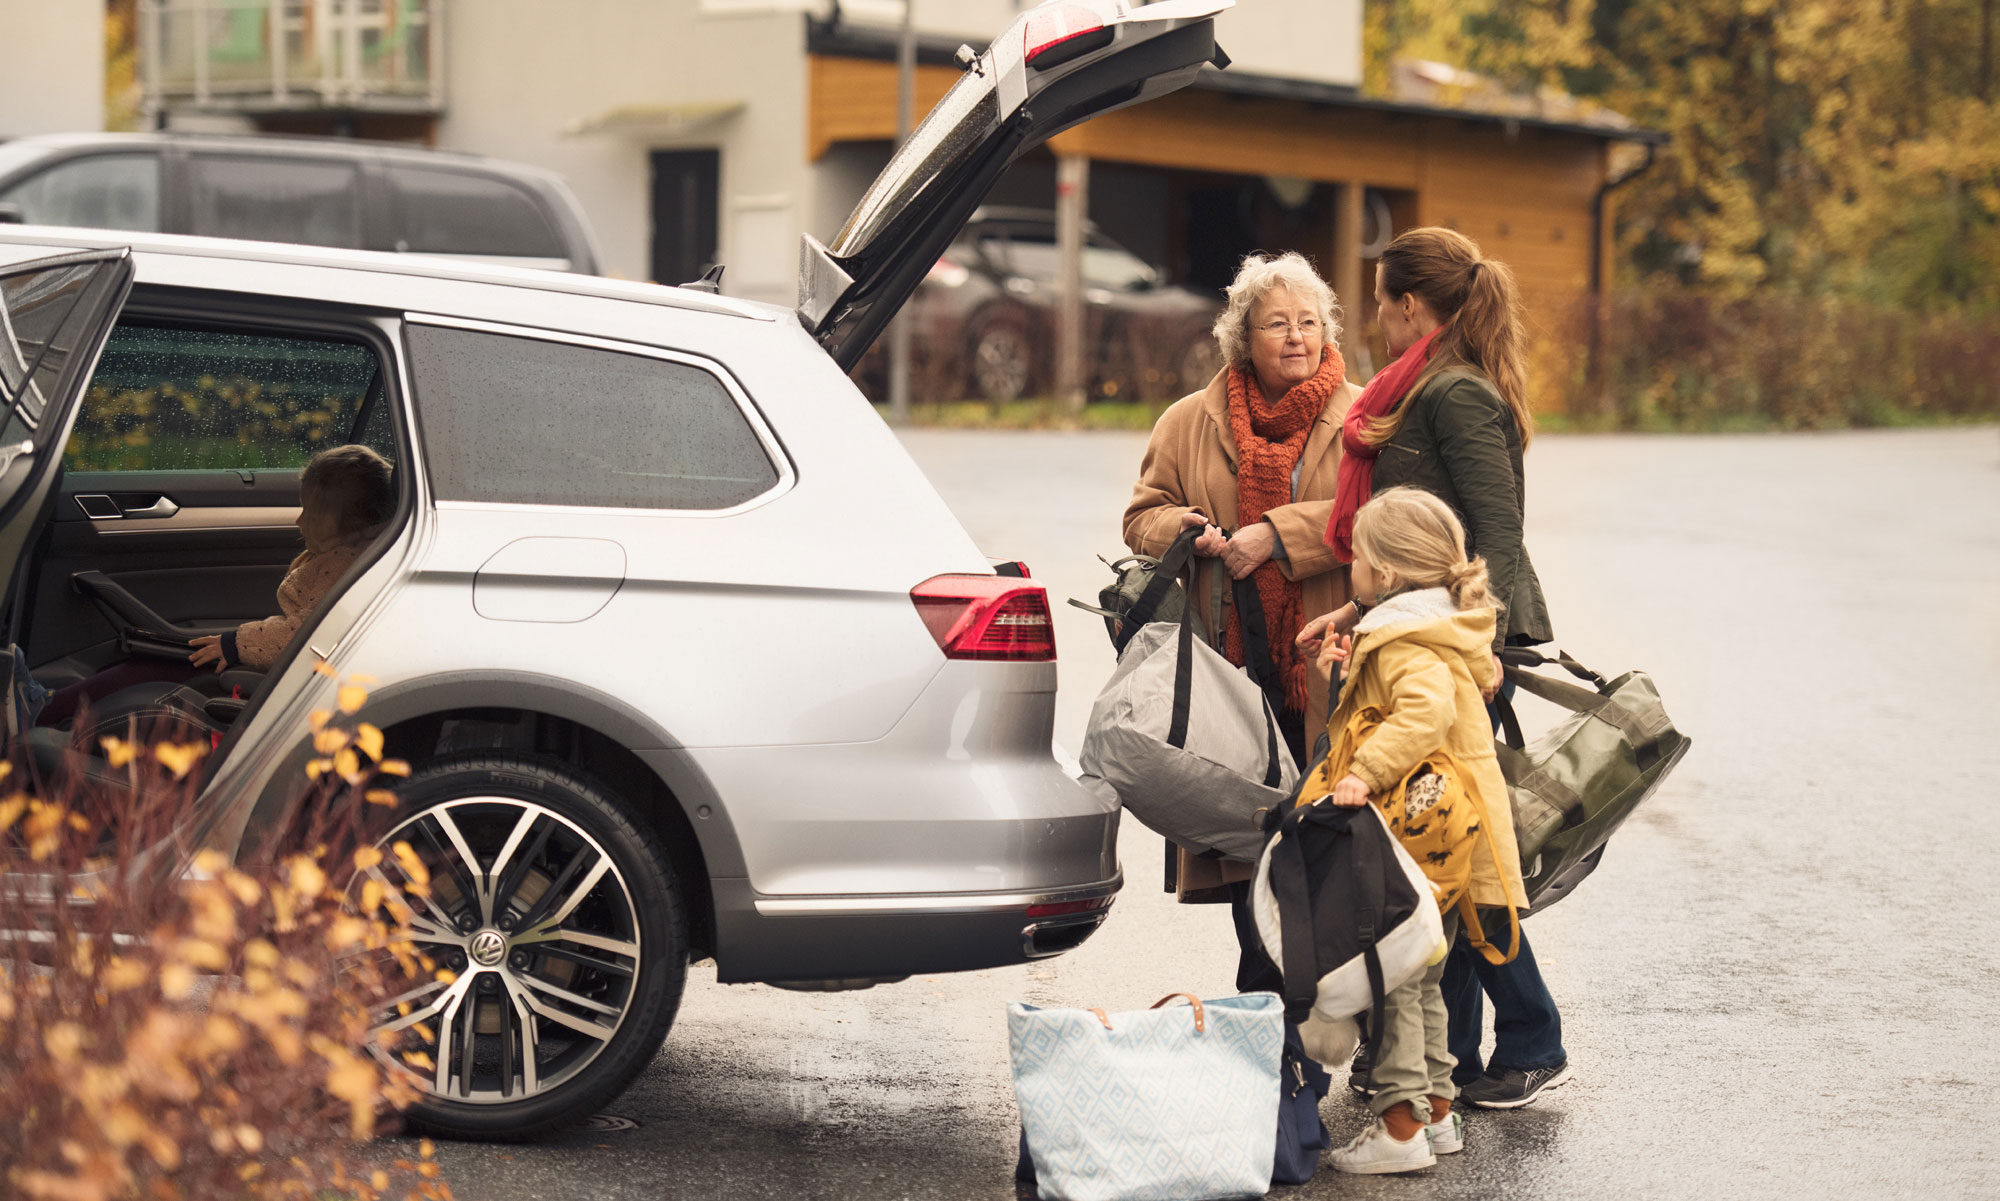 Grandmother, mother and child packing up the car.